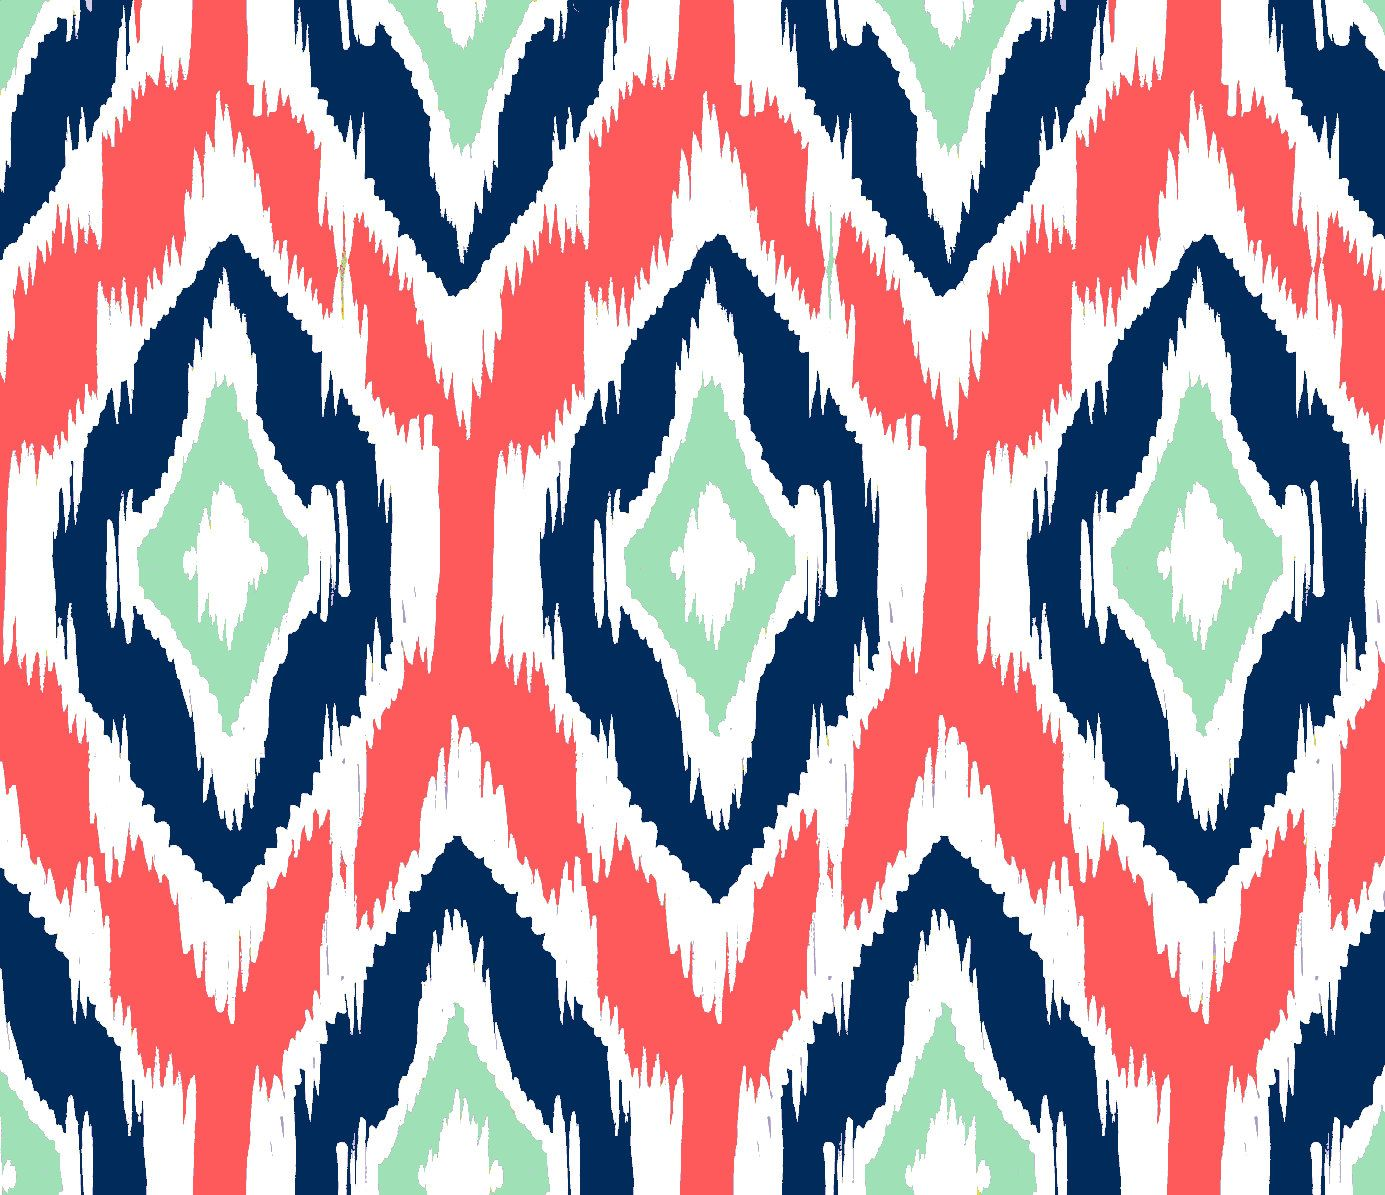 Chevron print fabric by the yard - Ikat Fabric By The Yard Coral Navy And Mint